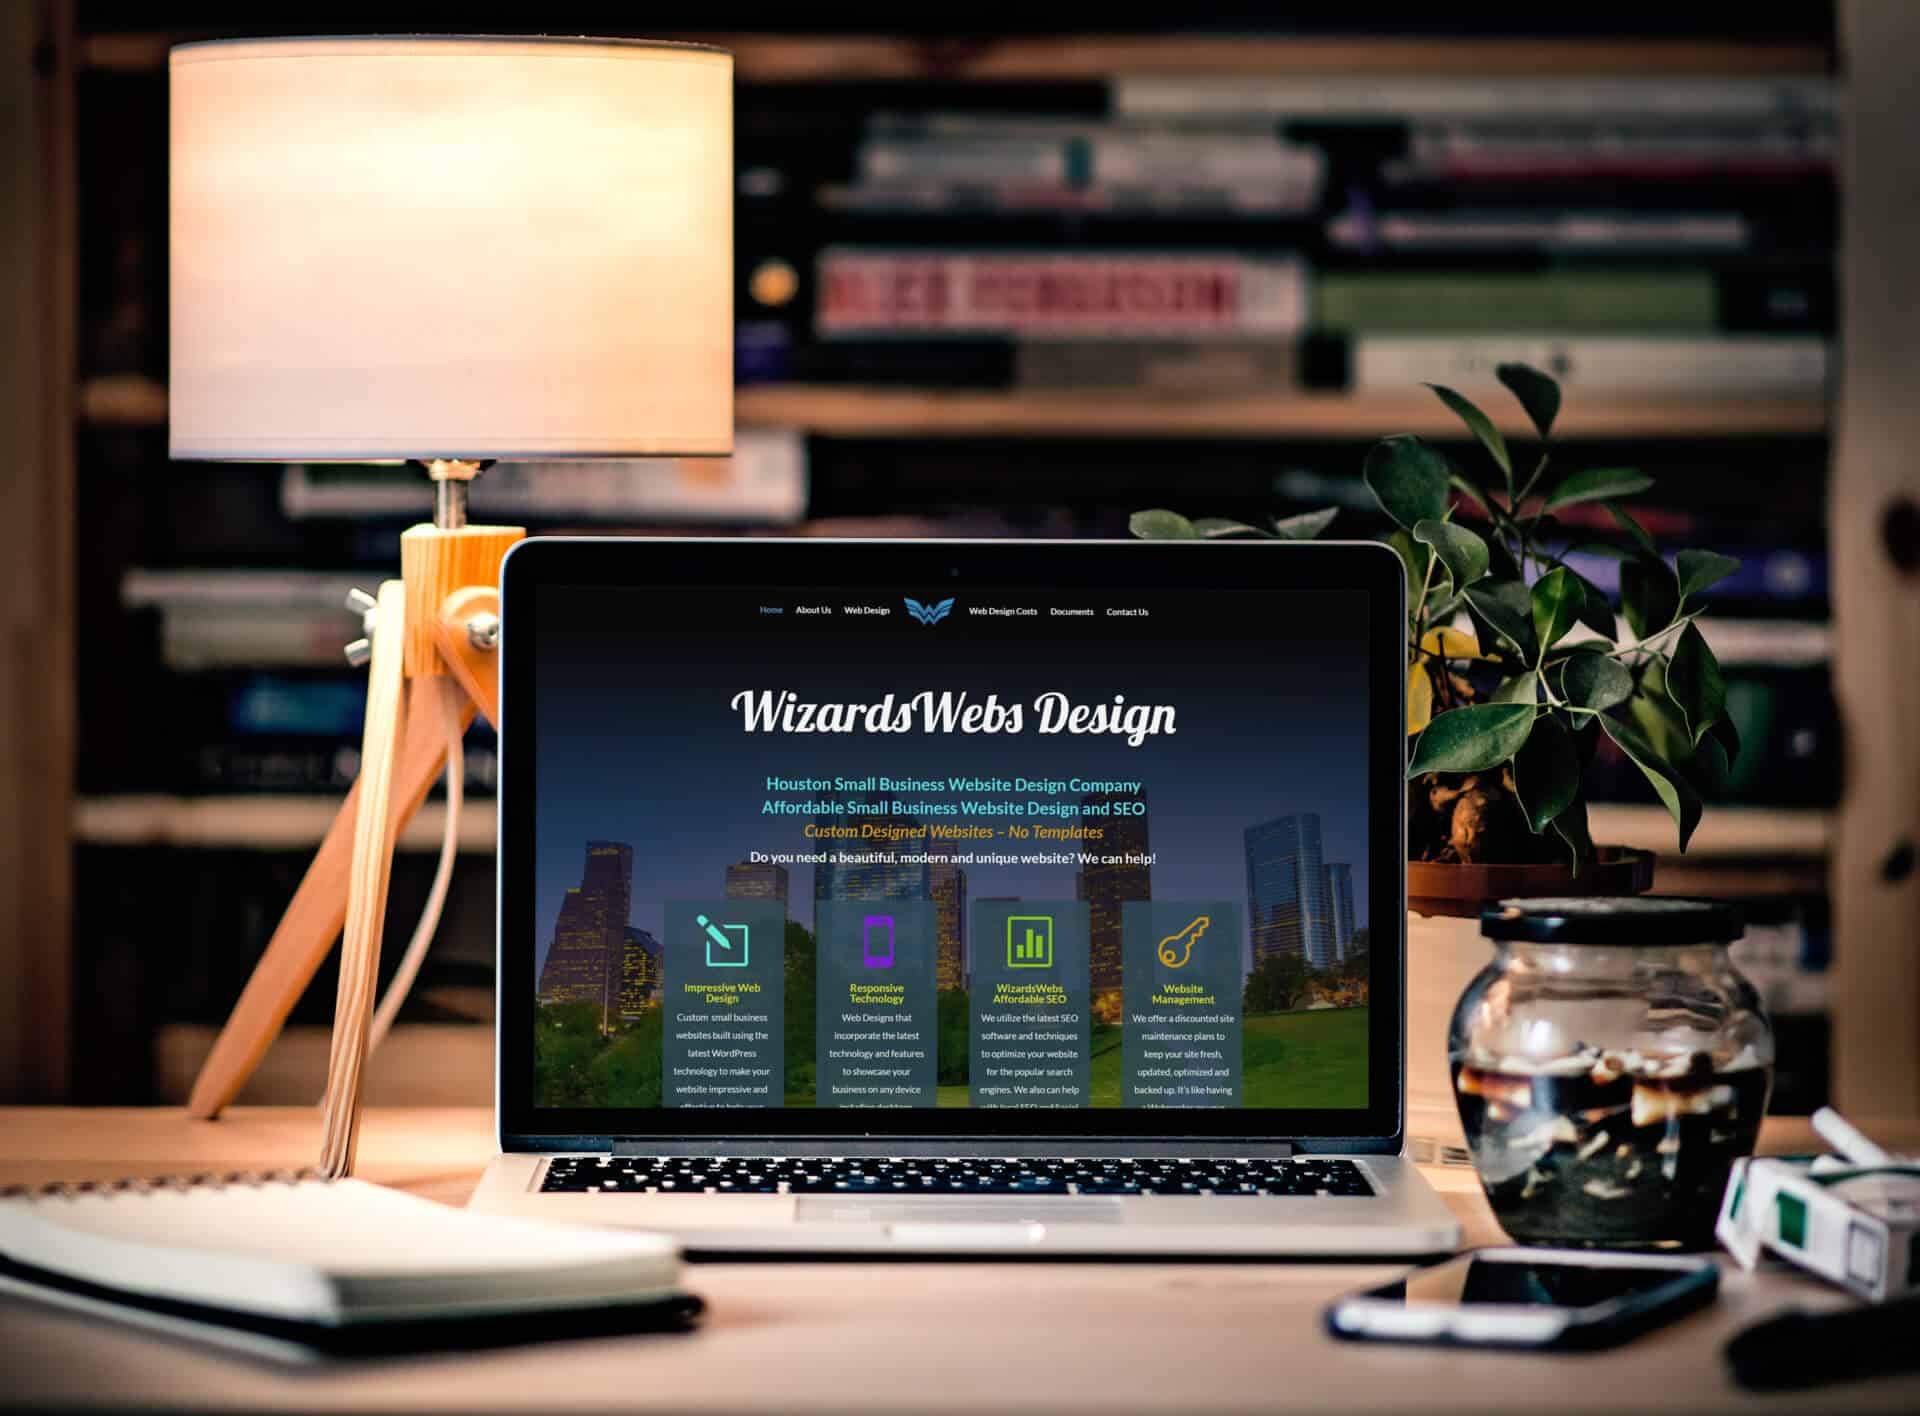 Best Website Design Services in Houston, TX - WizardsWebs Design LLC